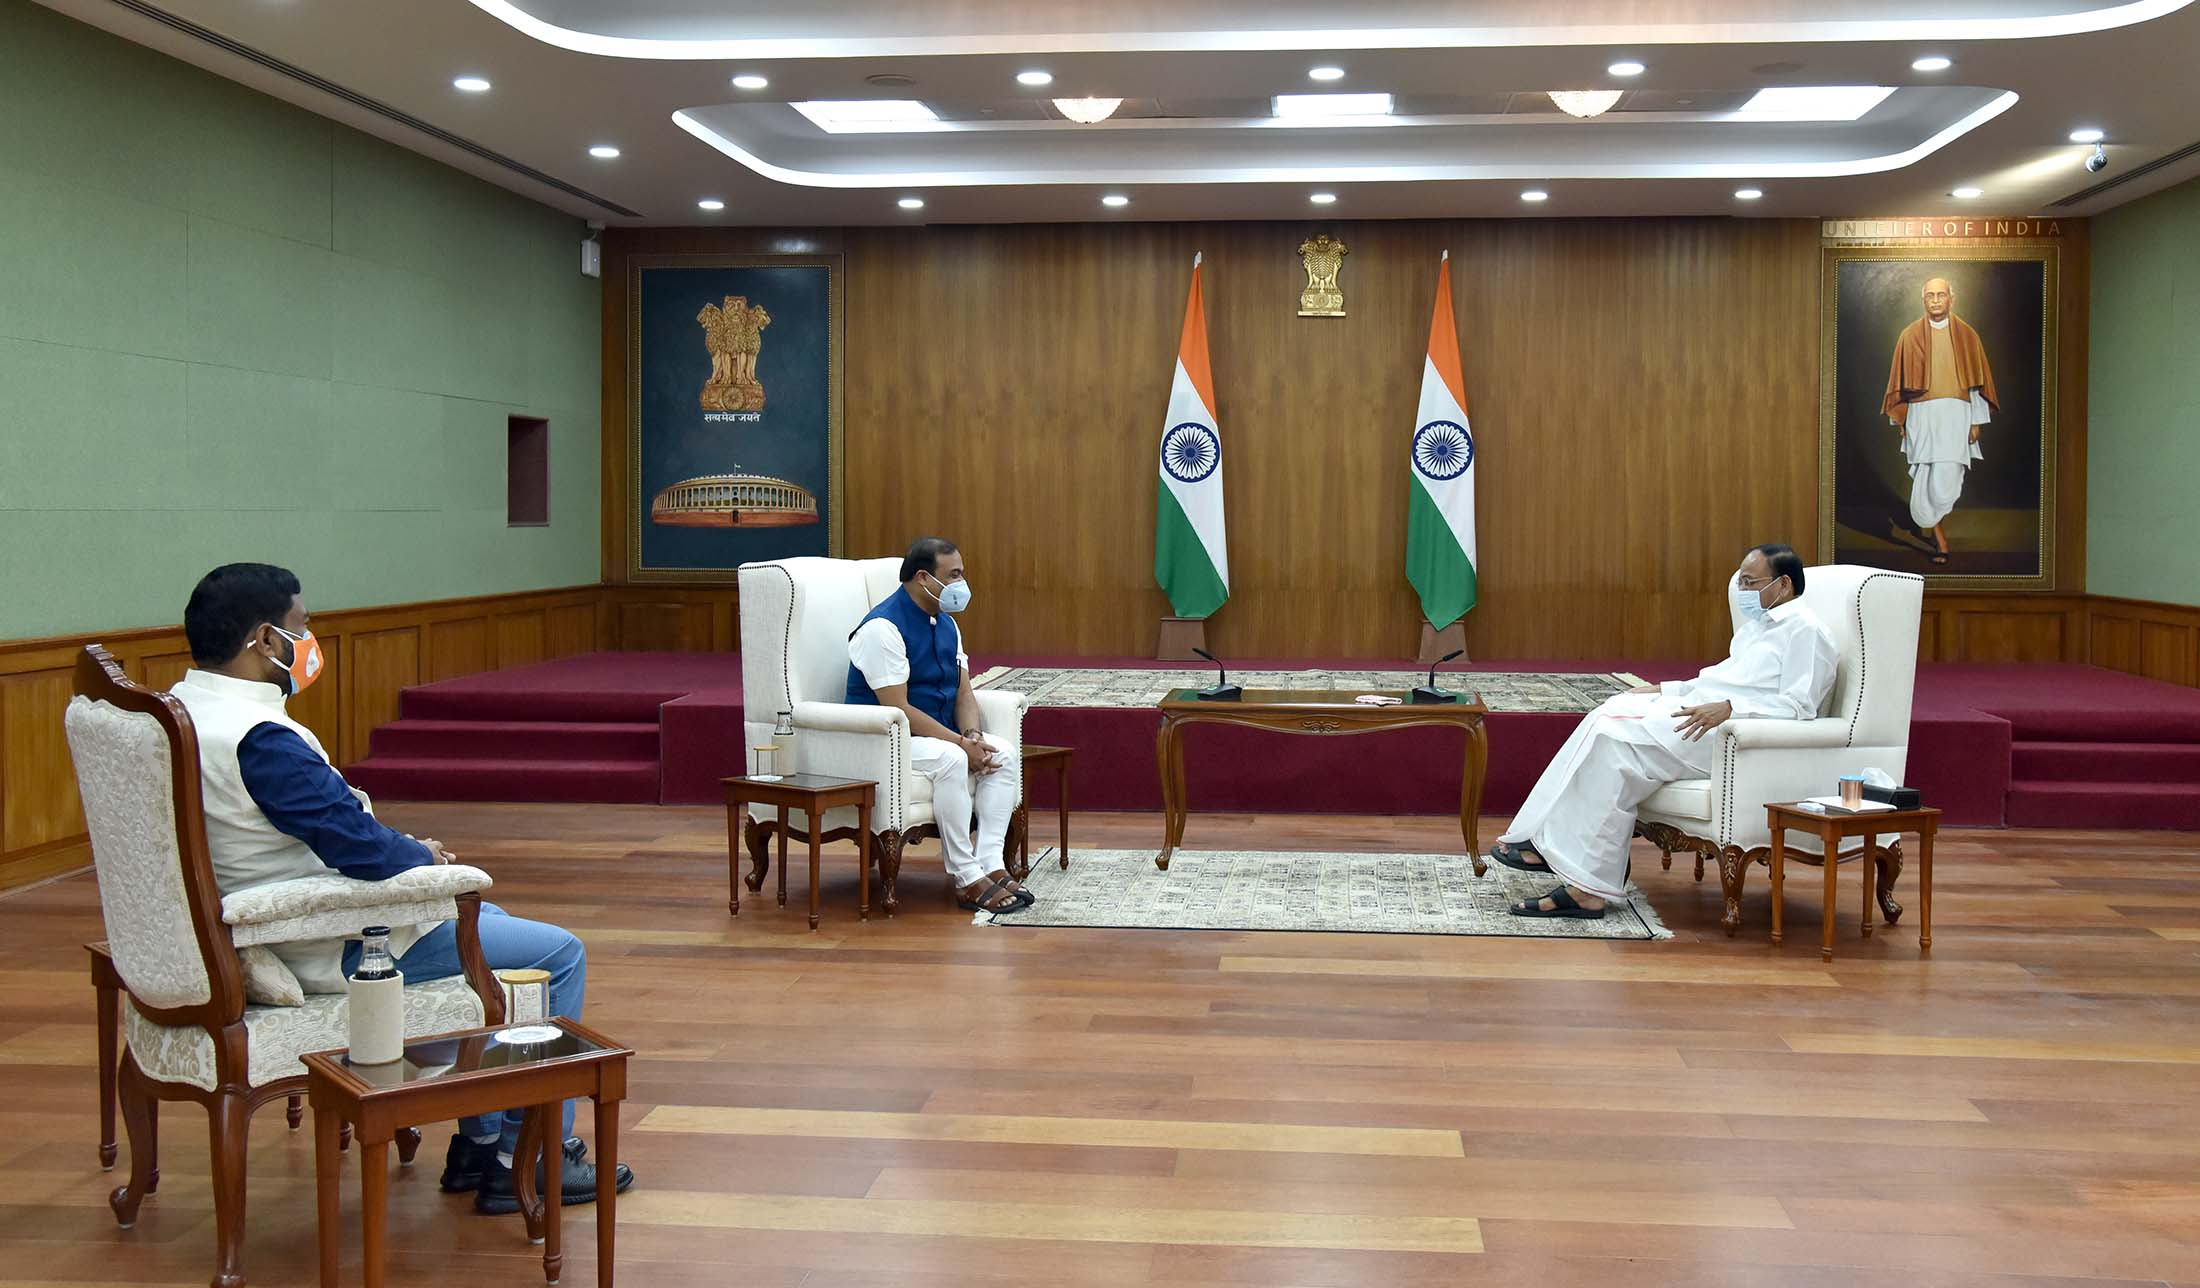 The Vice President, Shri M. Venkaiah Naidu, in an interaction with Shri Himanta Biswa Sarma, Chief Minister of Assam, and Shri Rameswar Teli, Minister of State for Food Processing Industries during their call-on at Upa-Rashtrapati Nivas on June 1, 2021.